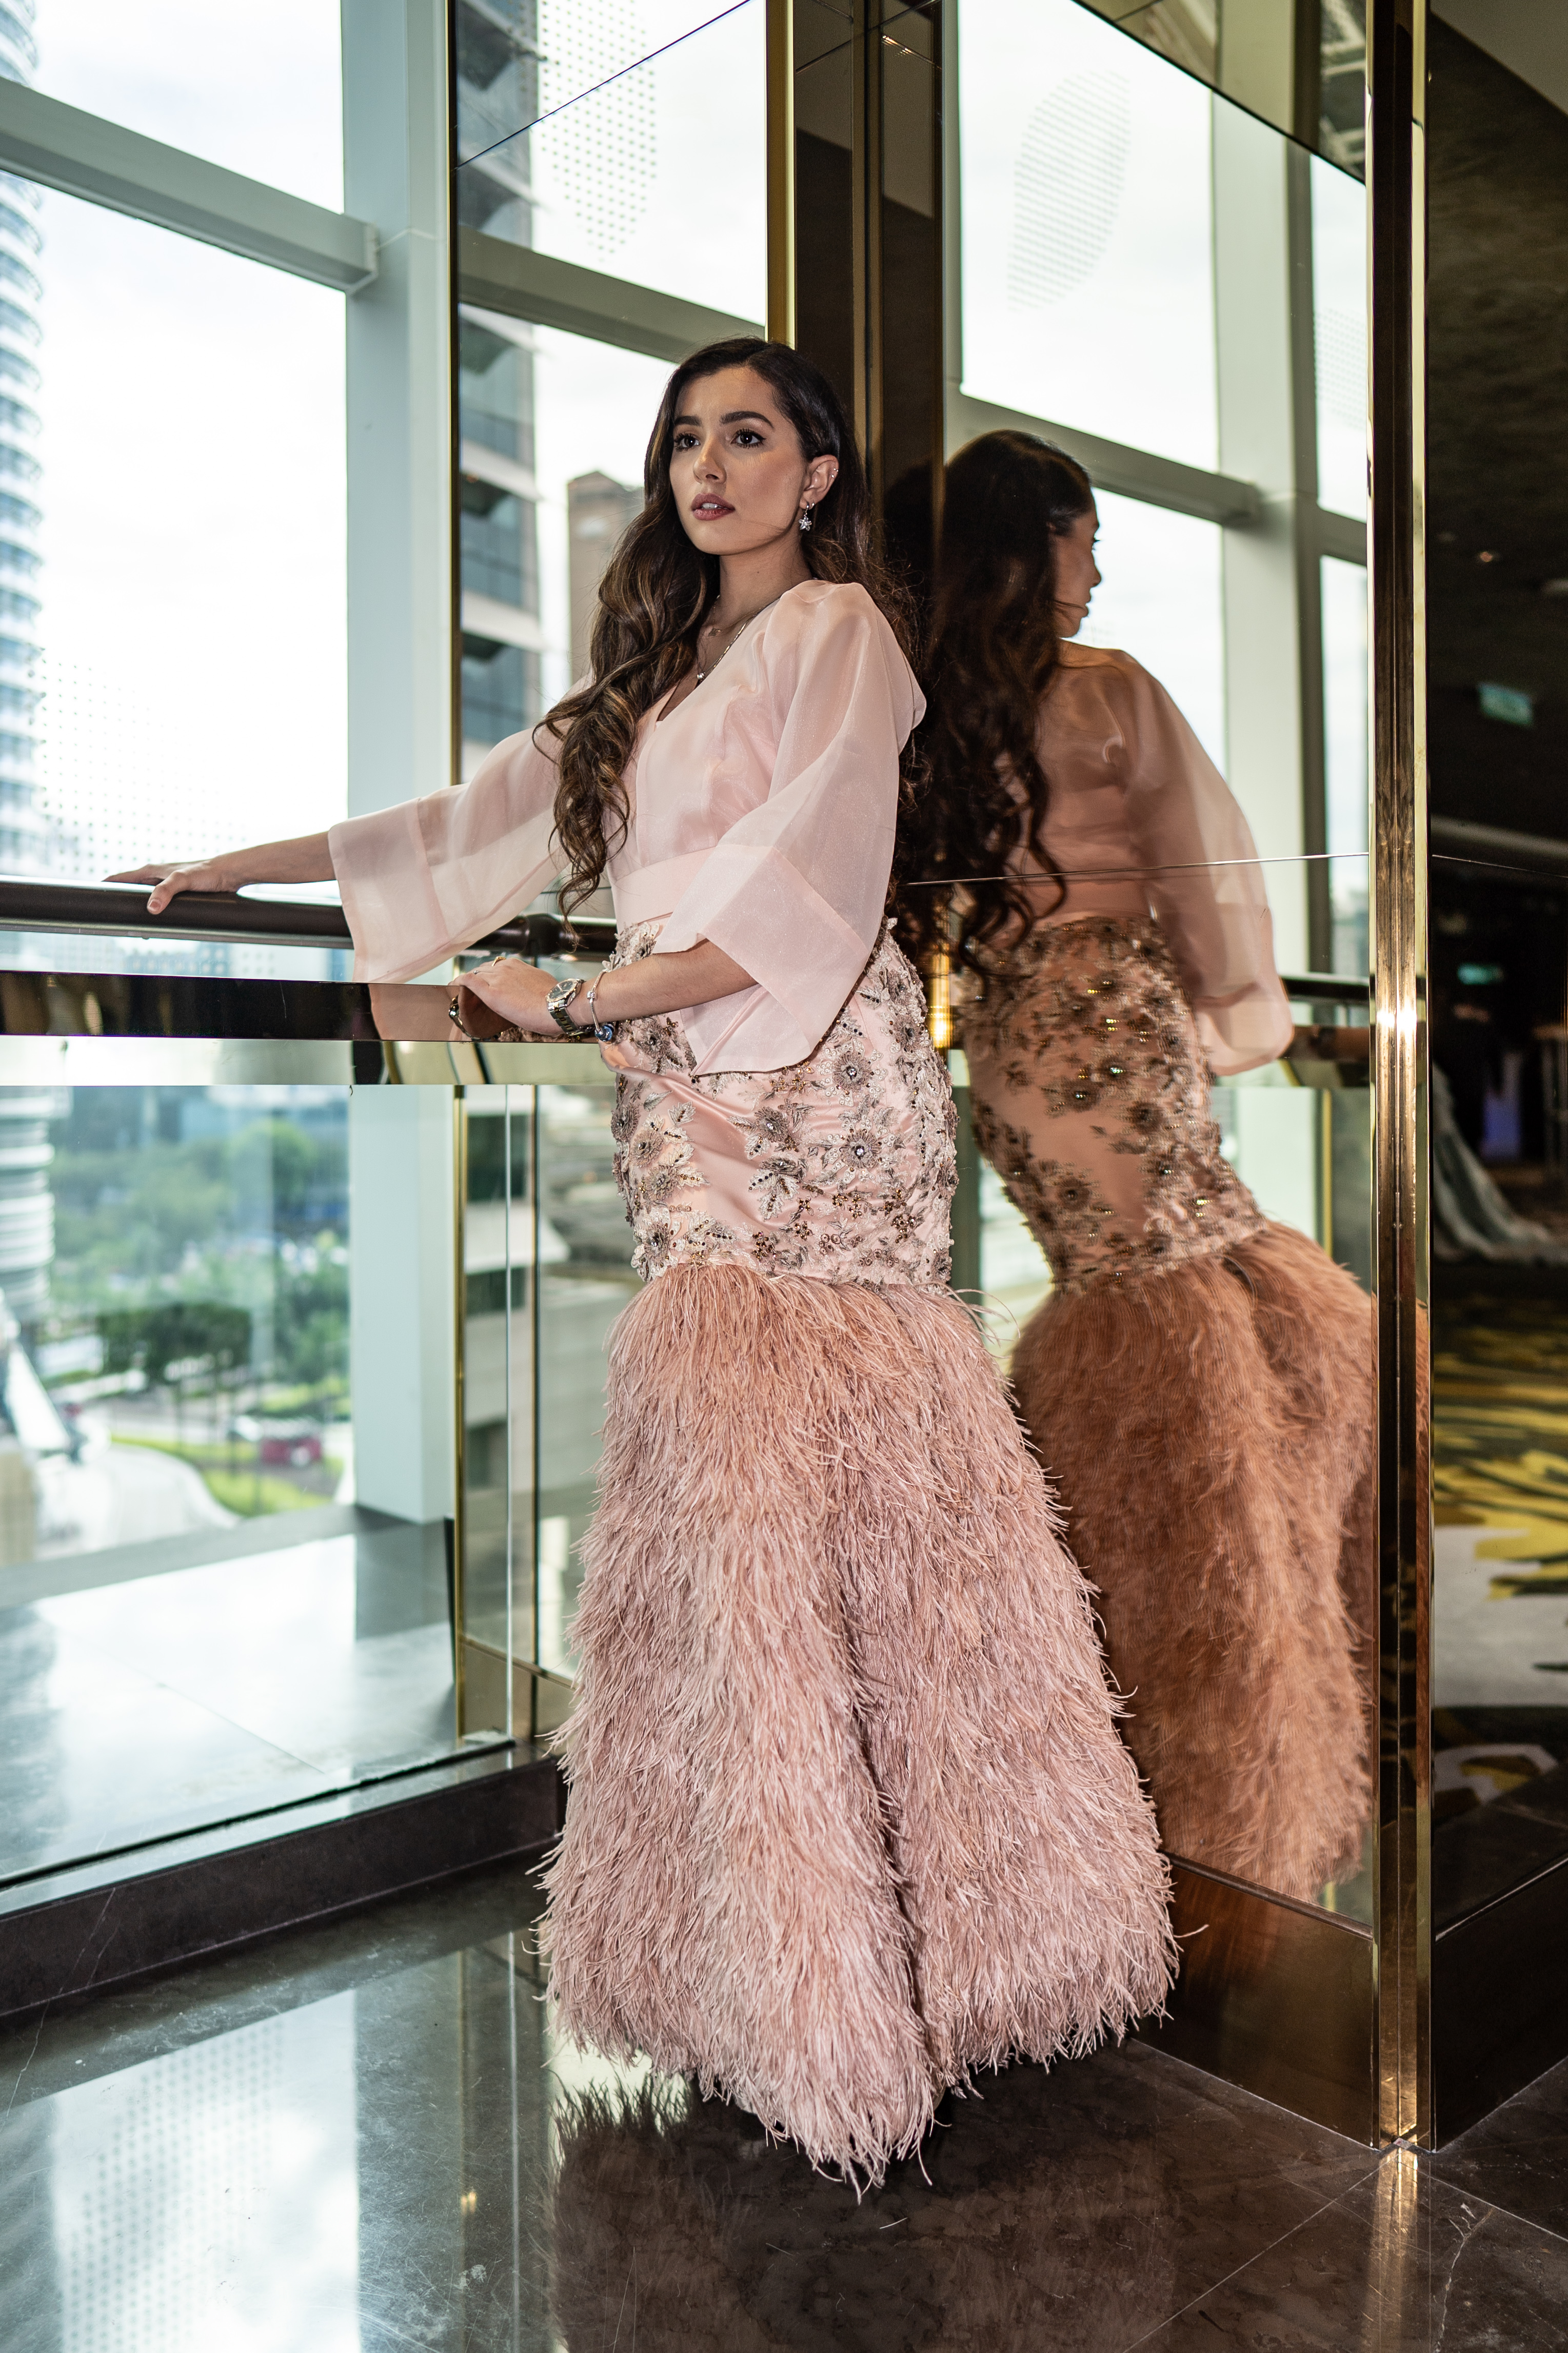 Amelia Thripura Henderson in CHARIS CHING gown